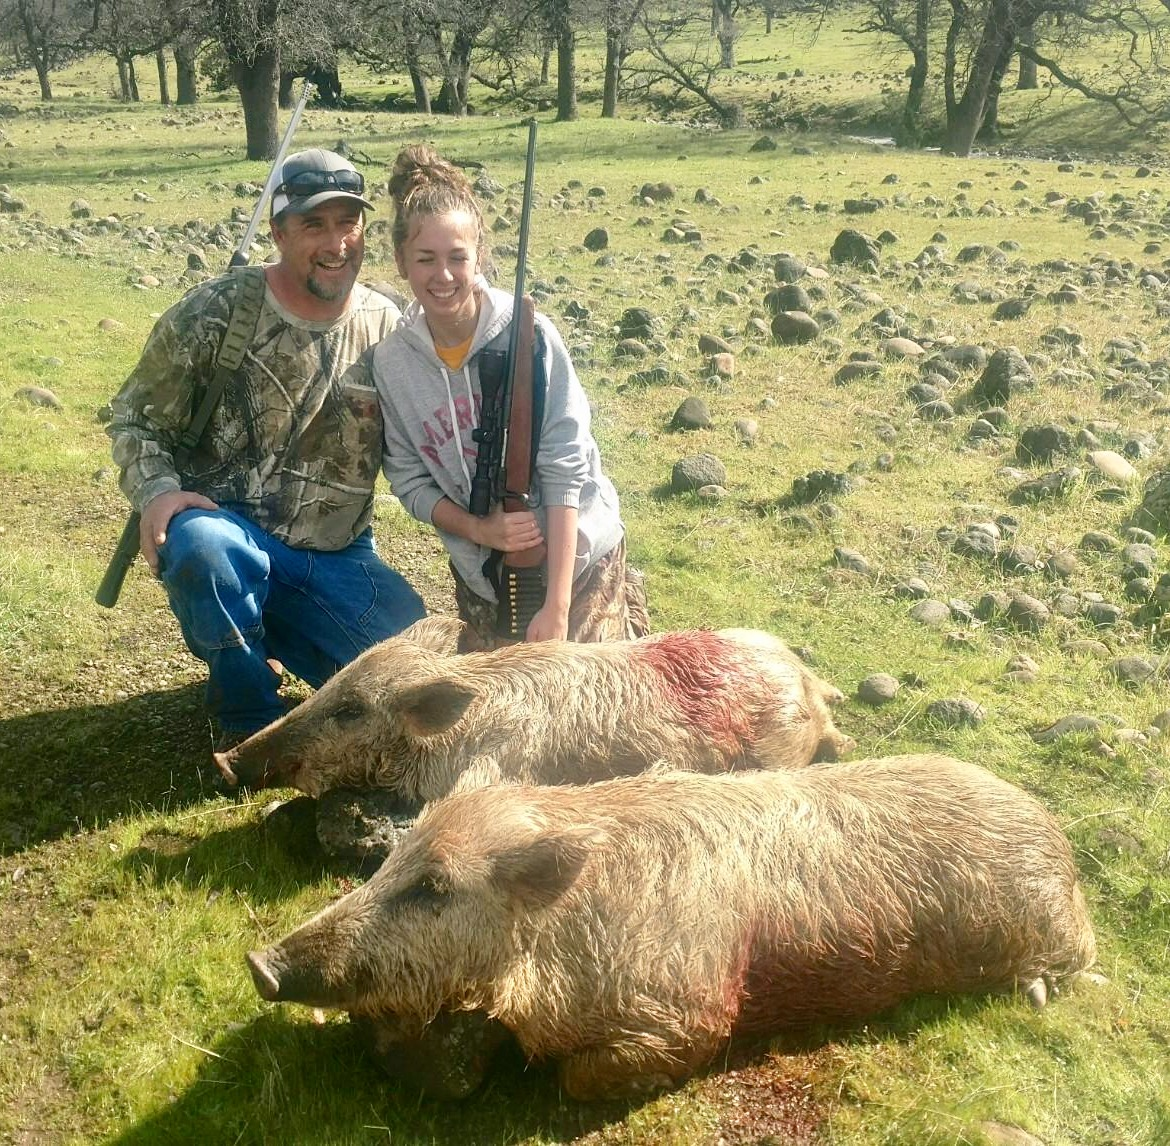 Mike and his daughter with her first pig